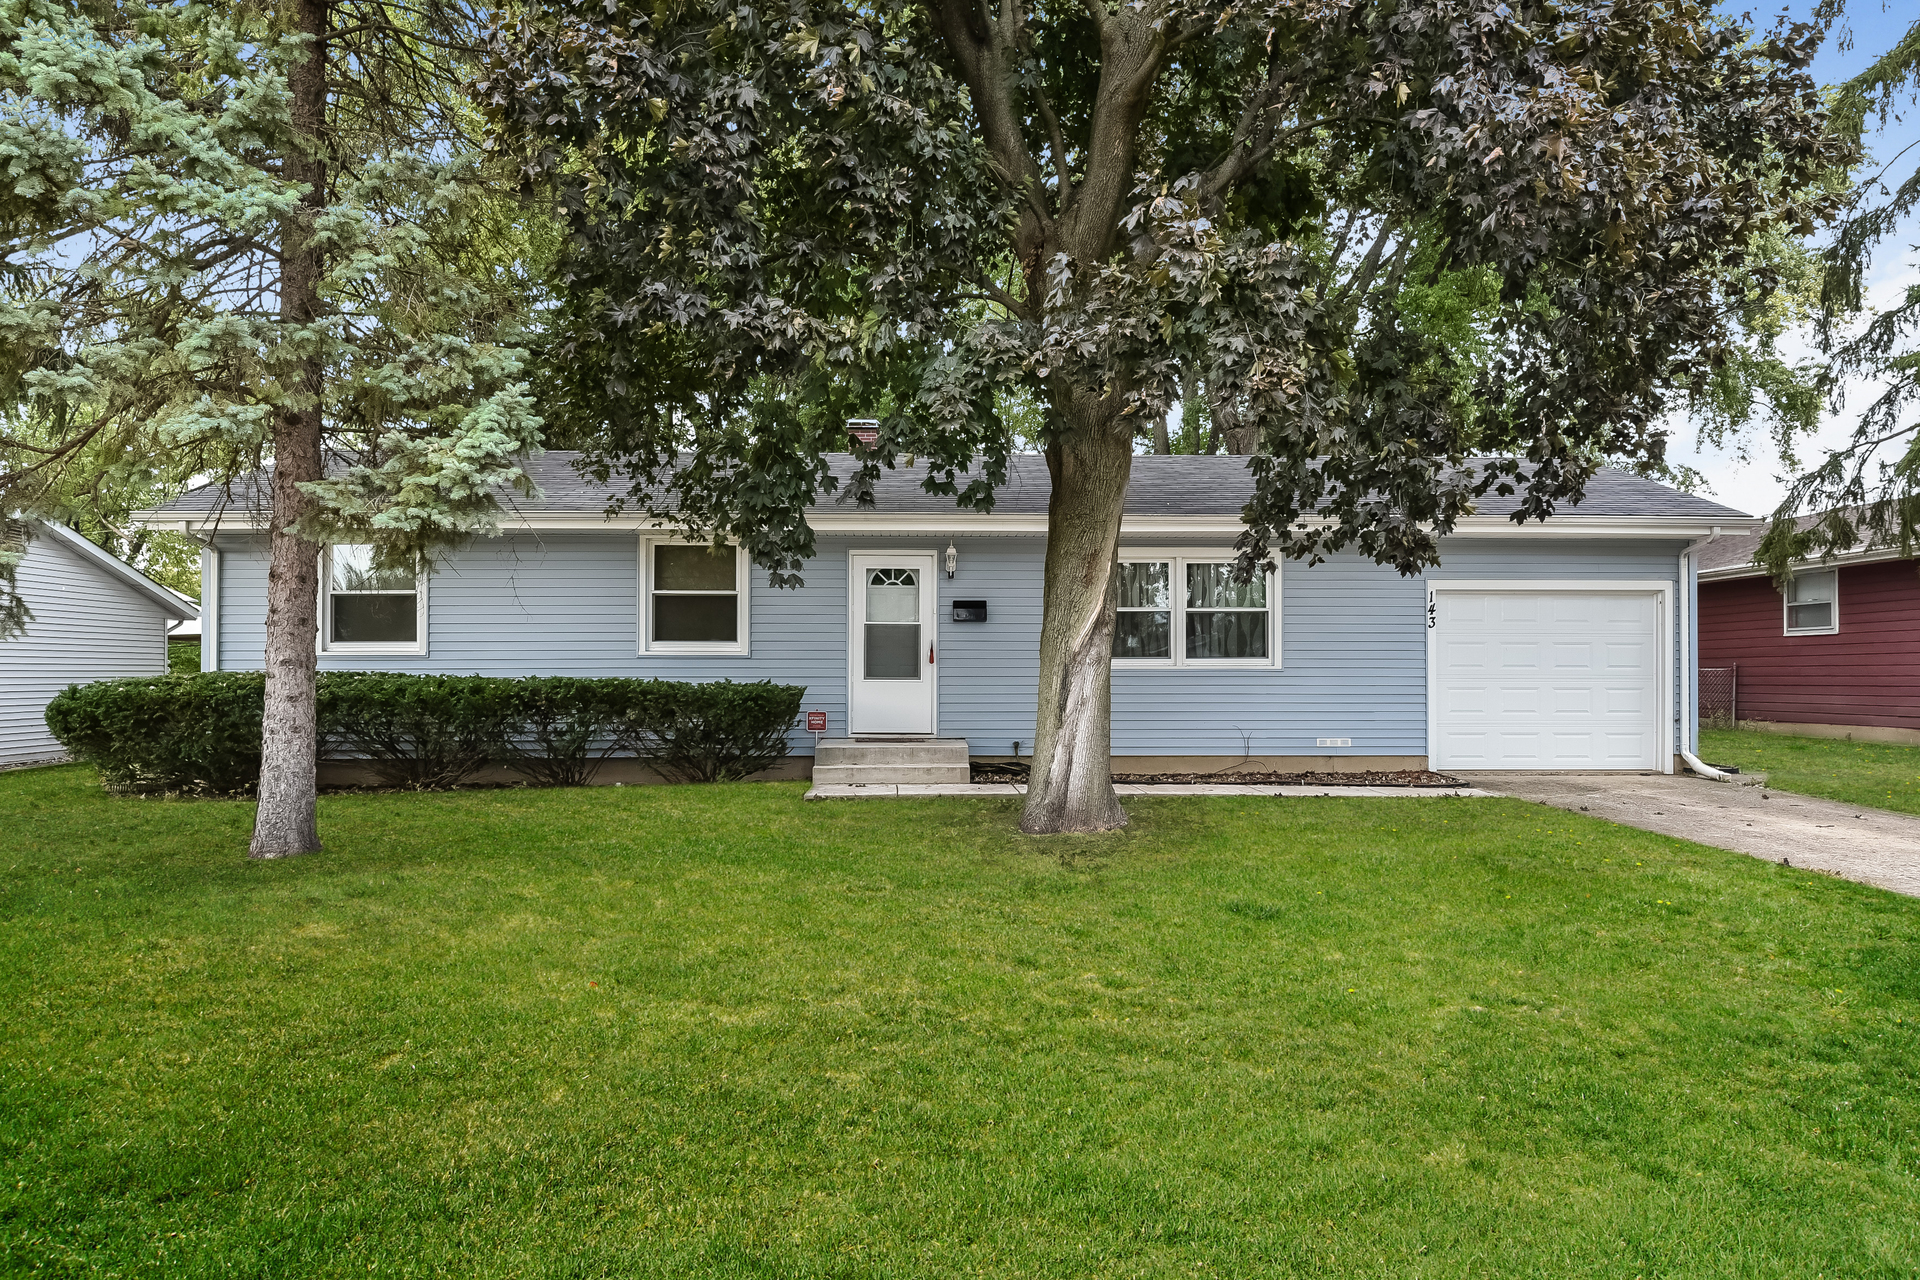 Photo of 143 Thunderbird Trail, Carol Stream, IL, 60188